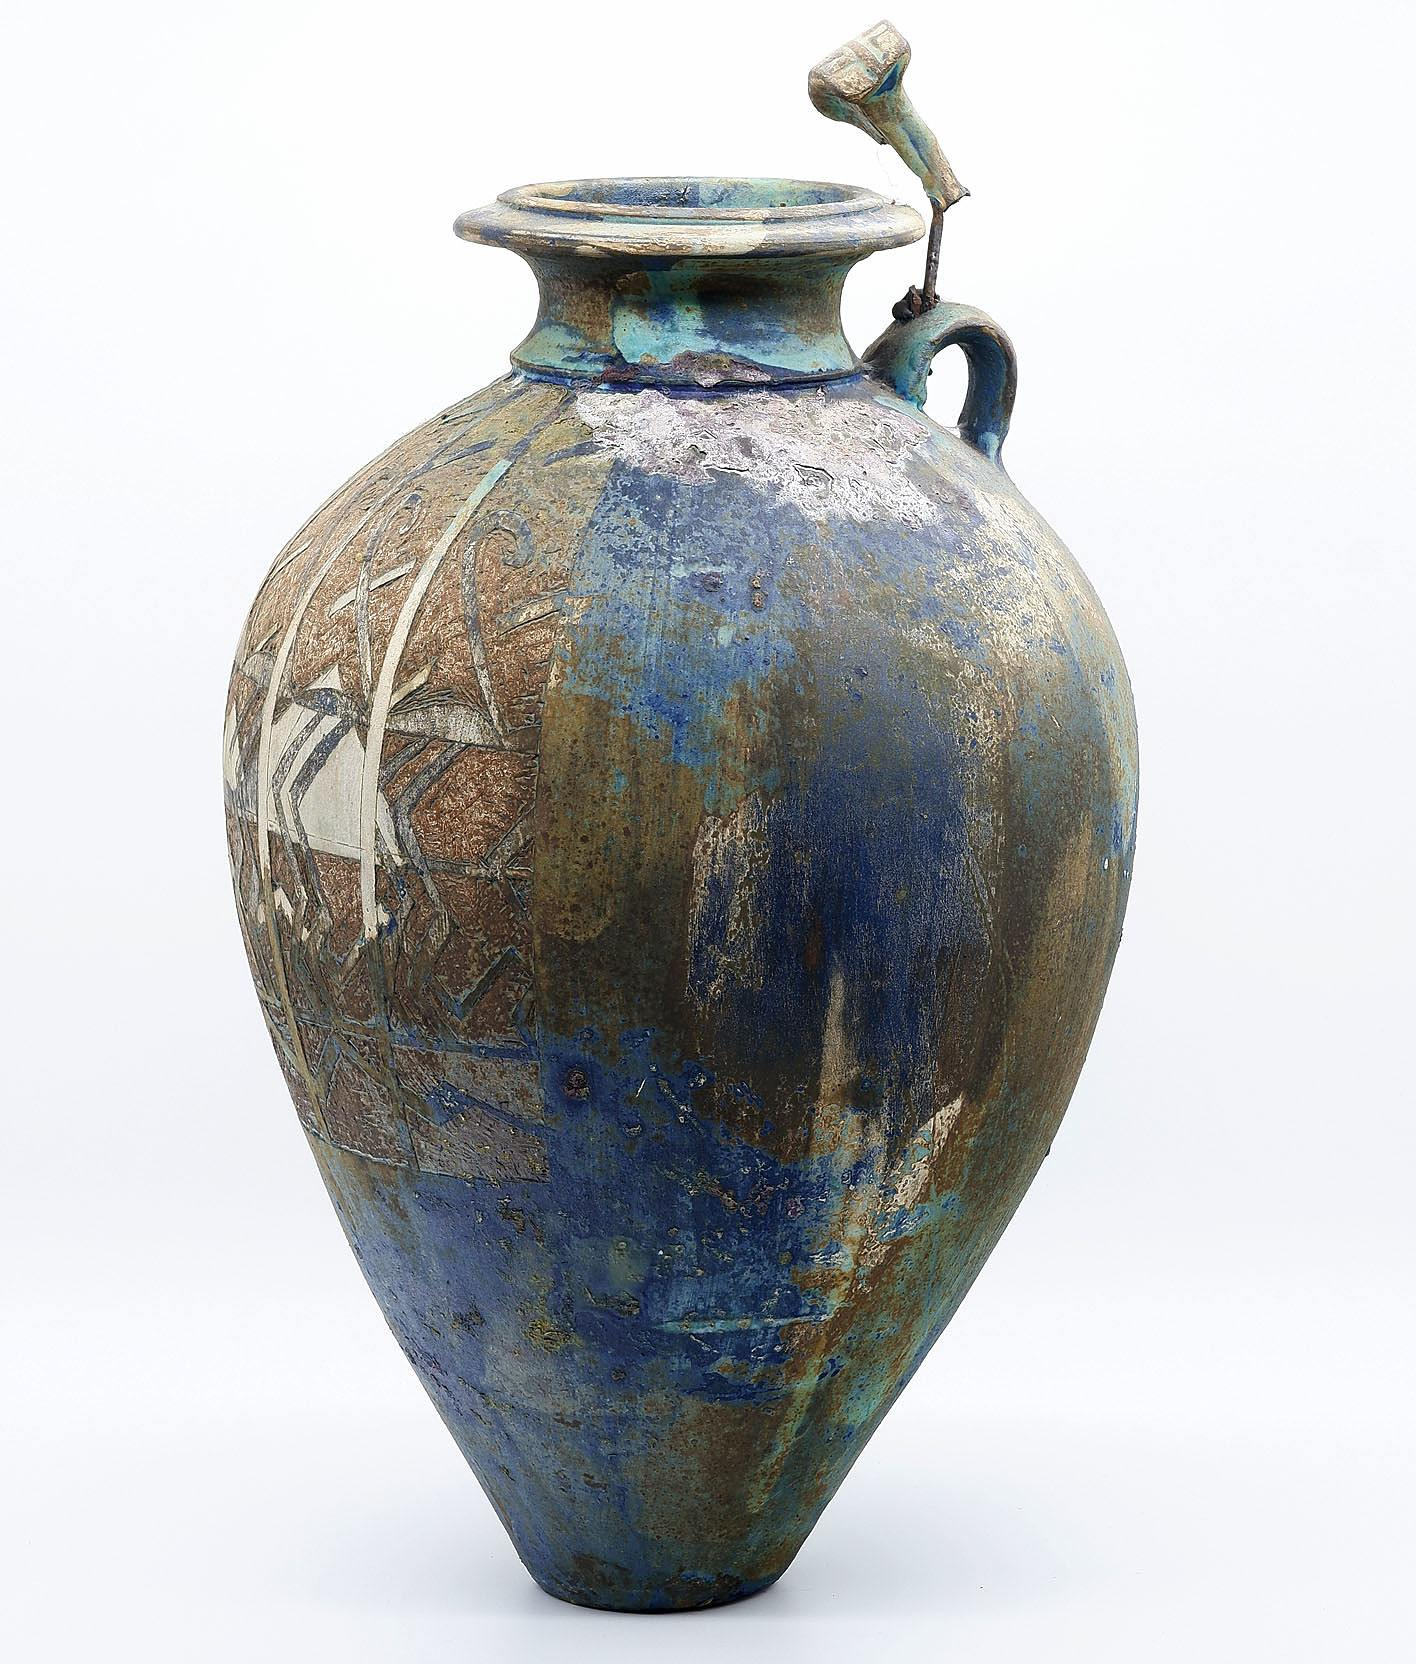 'Alan Peascod (b. 1943) Attributed Carved and Glazed Stoneware Urn'